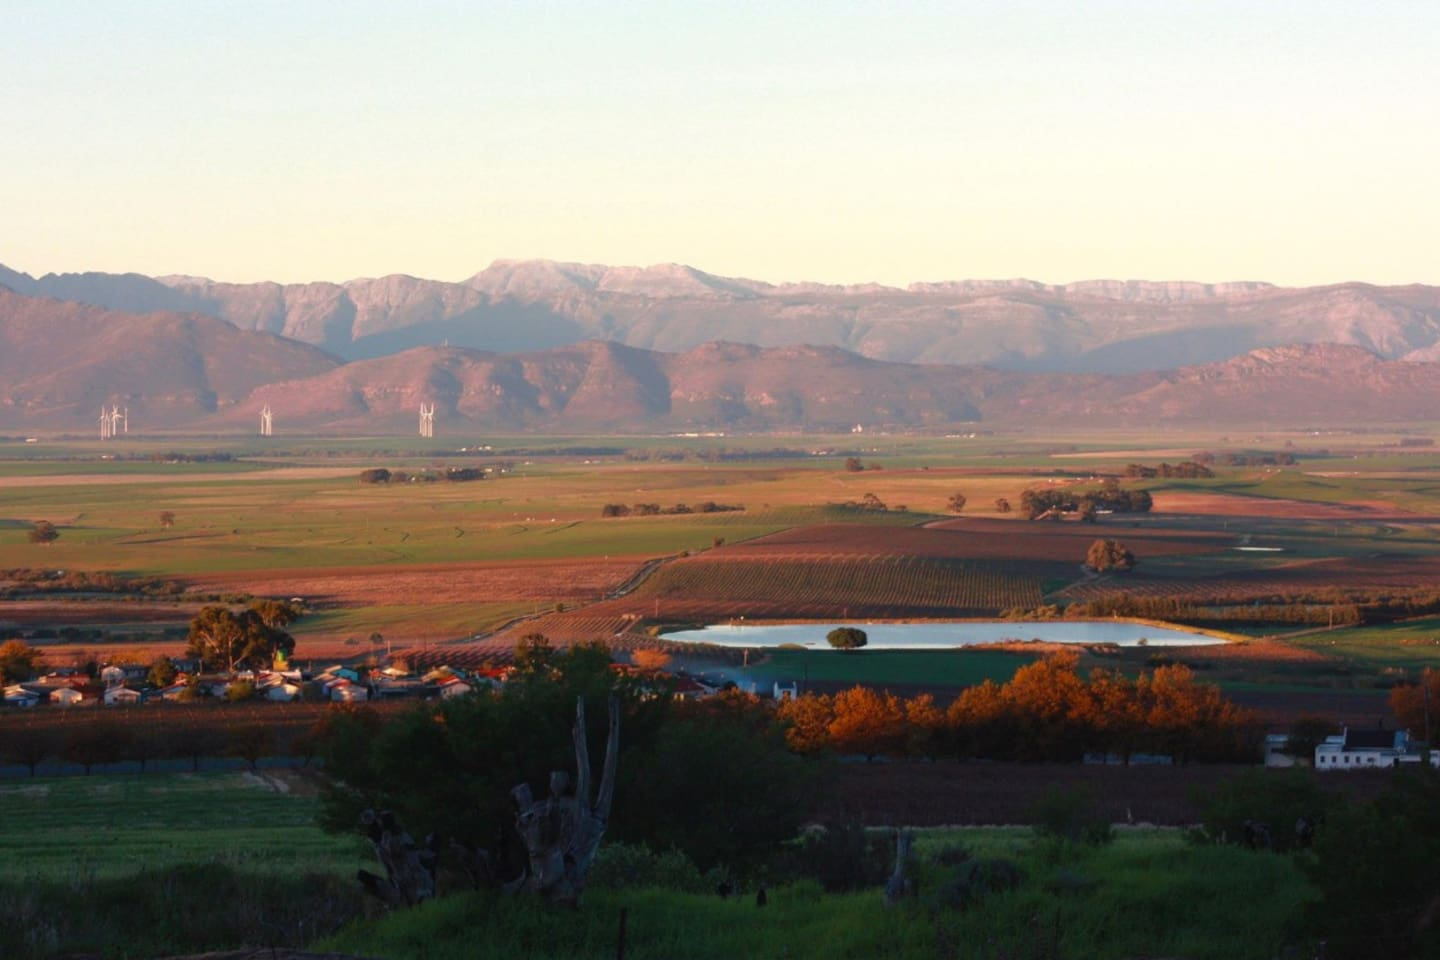 """Here is a panaromic view of the Riebeeck valley which you will experience exactly like this from the front """"stoep"""" of The Vines. This was a sunset captured ."""